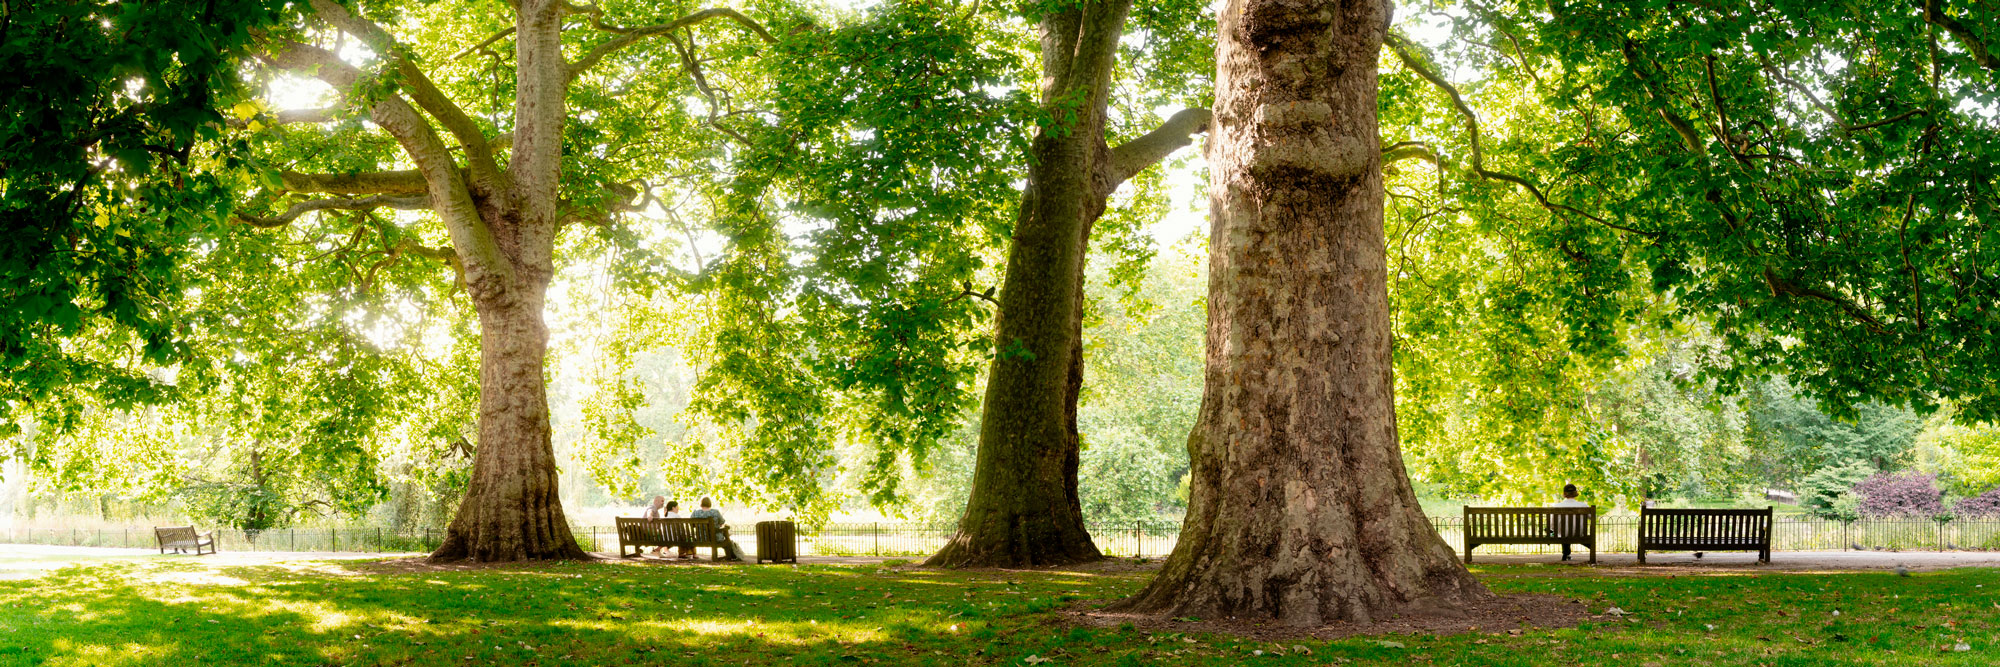 summer in a London park